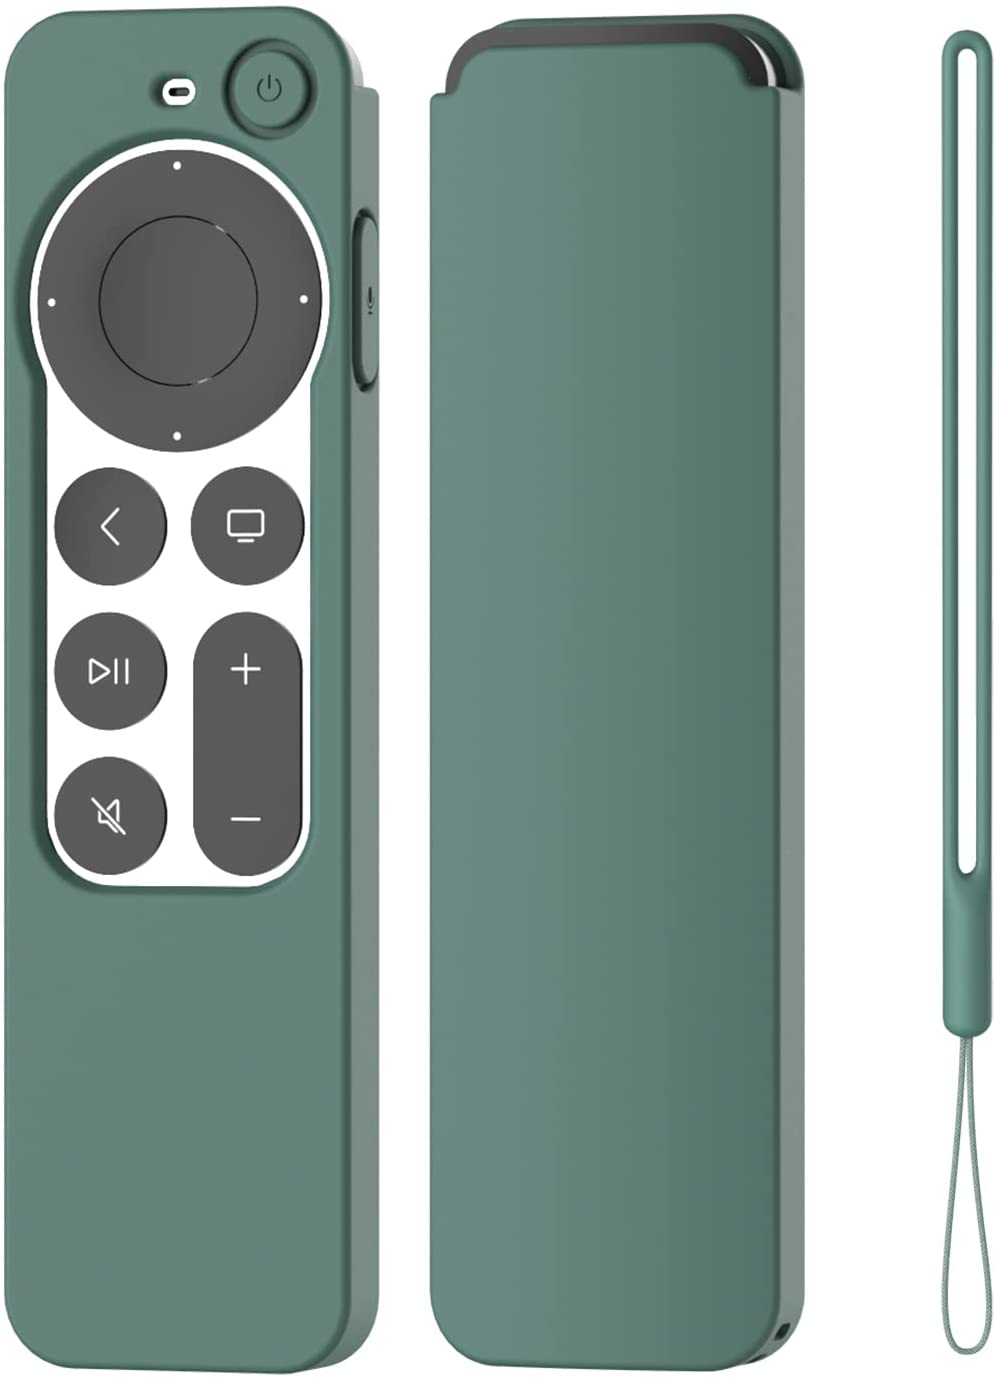 K TOMOTO Compatible with Apple TV 4K Siri Remote Case 2021, Silky-Soft Anti-Slip Protective Silicone Cover for Siri Remote Control 2nd Generation [Lanyard Included], Pine Green